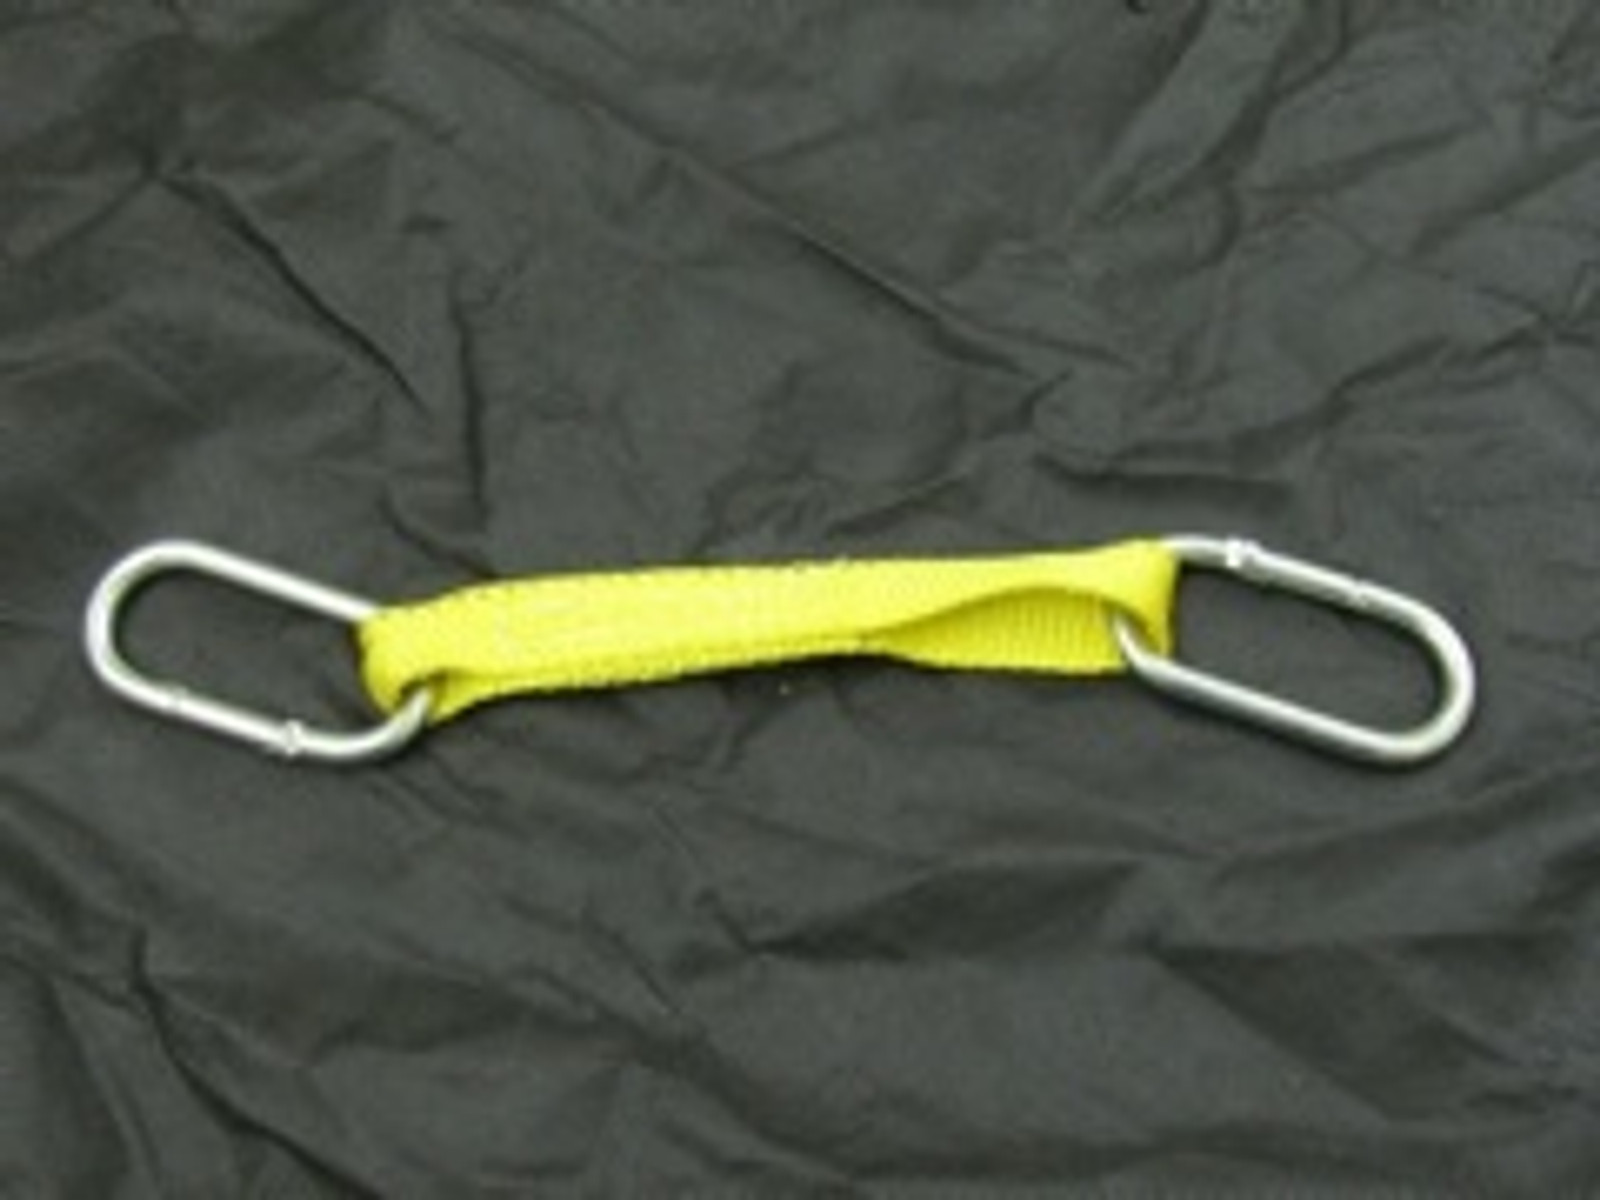 Yellowjack tower tool with lanyard